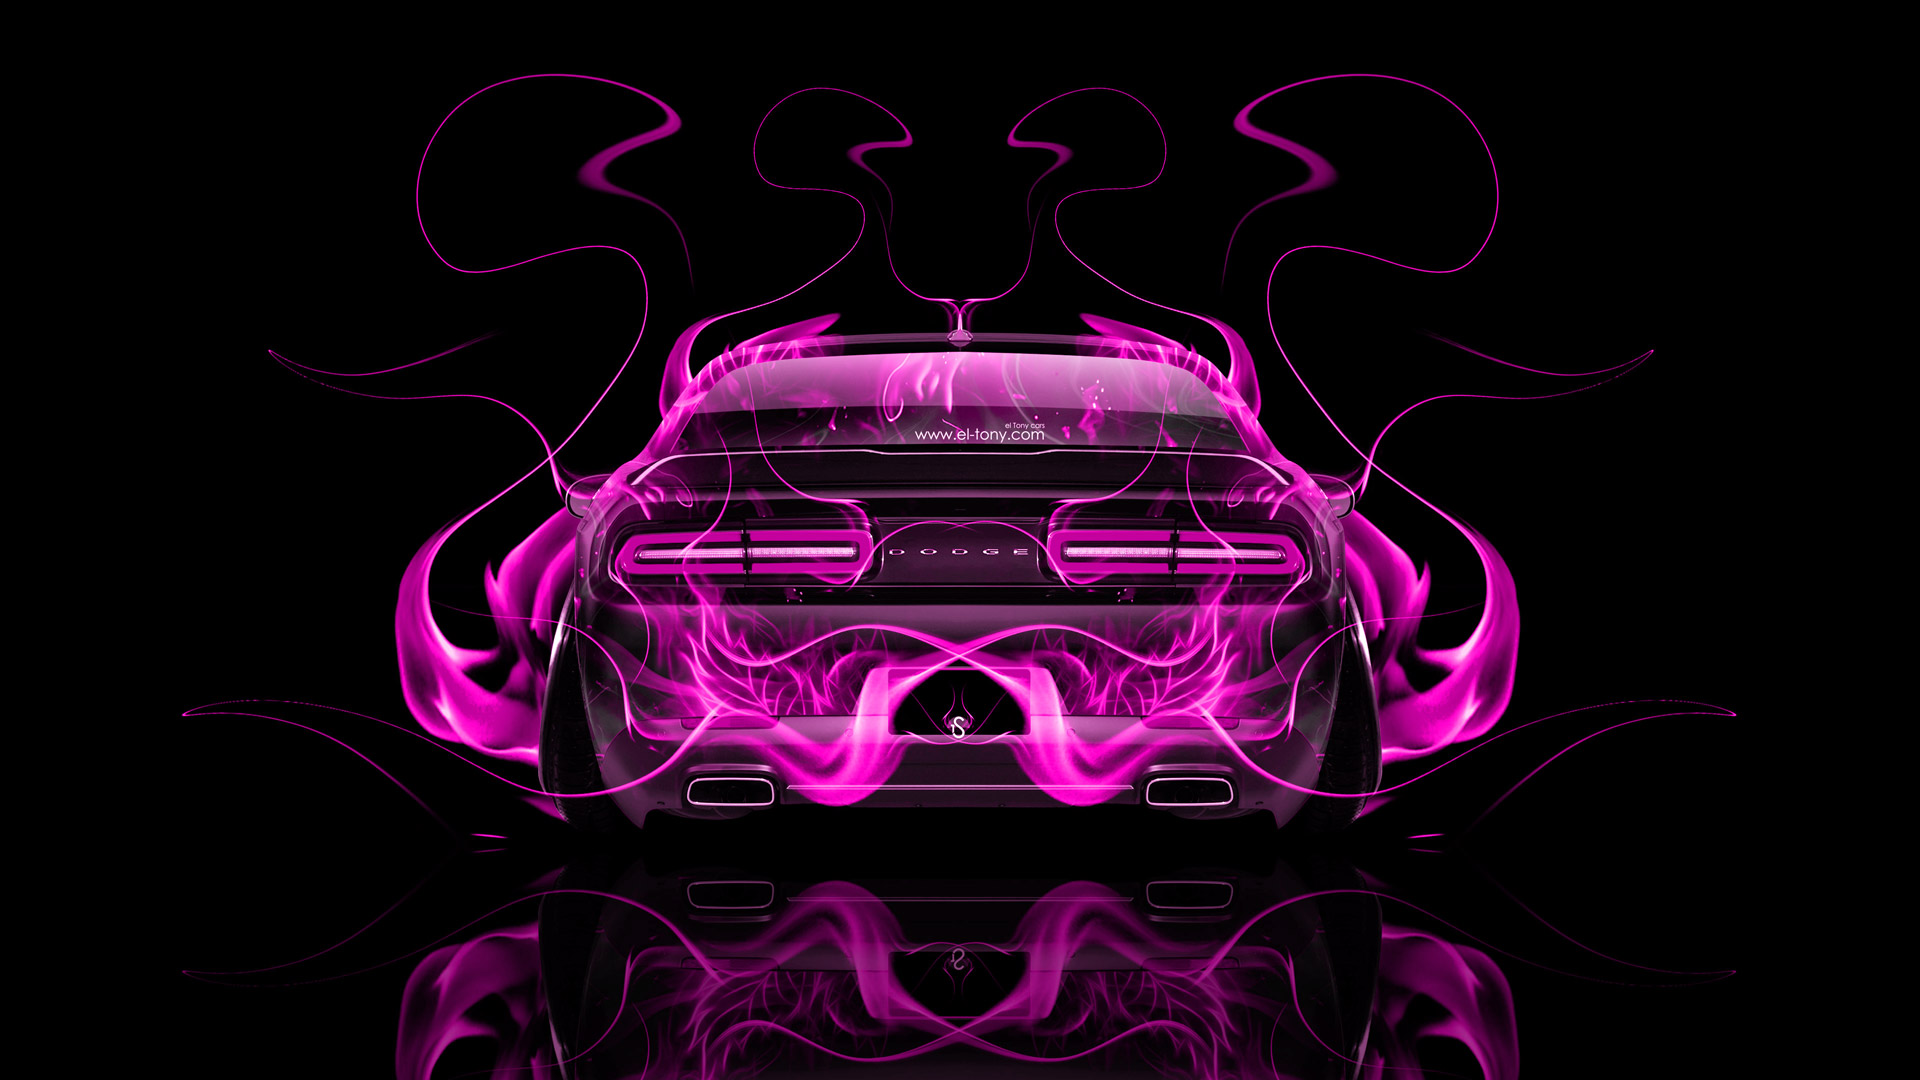 Cool Neon Cars Wallpapers Dodge Challenger Muscle Back Fire Abstract Car 2014 El Tony